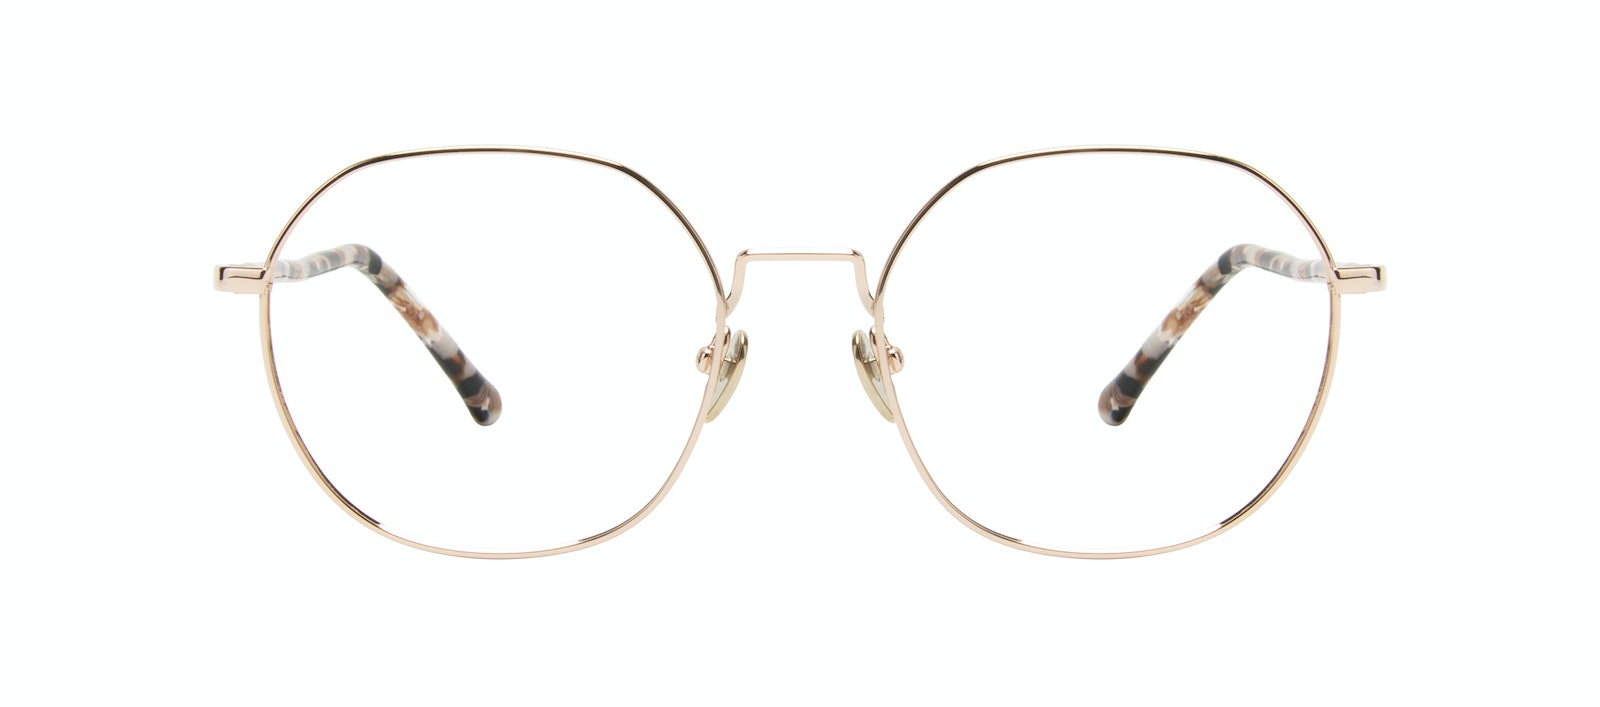 Affordable Fashion Glasses Round Eyeglasses Women Coco Gold Front